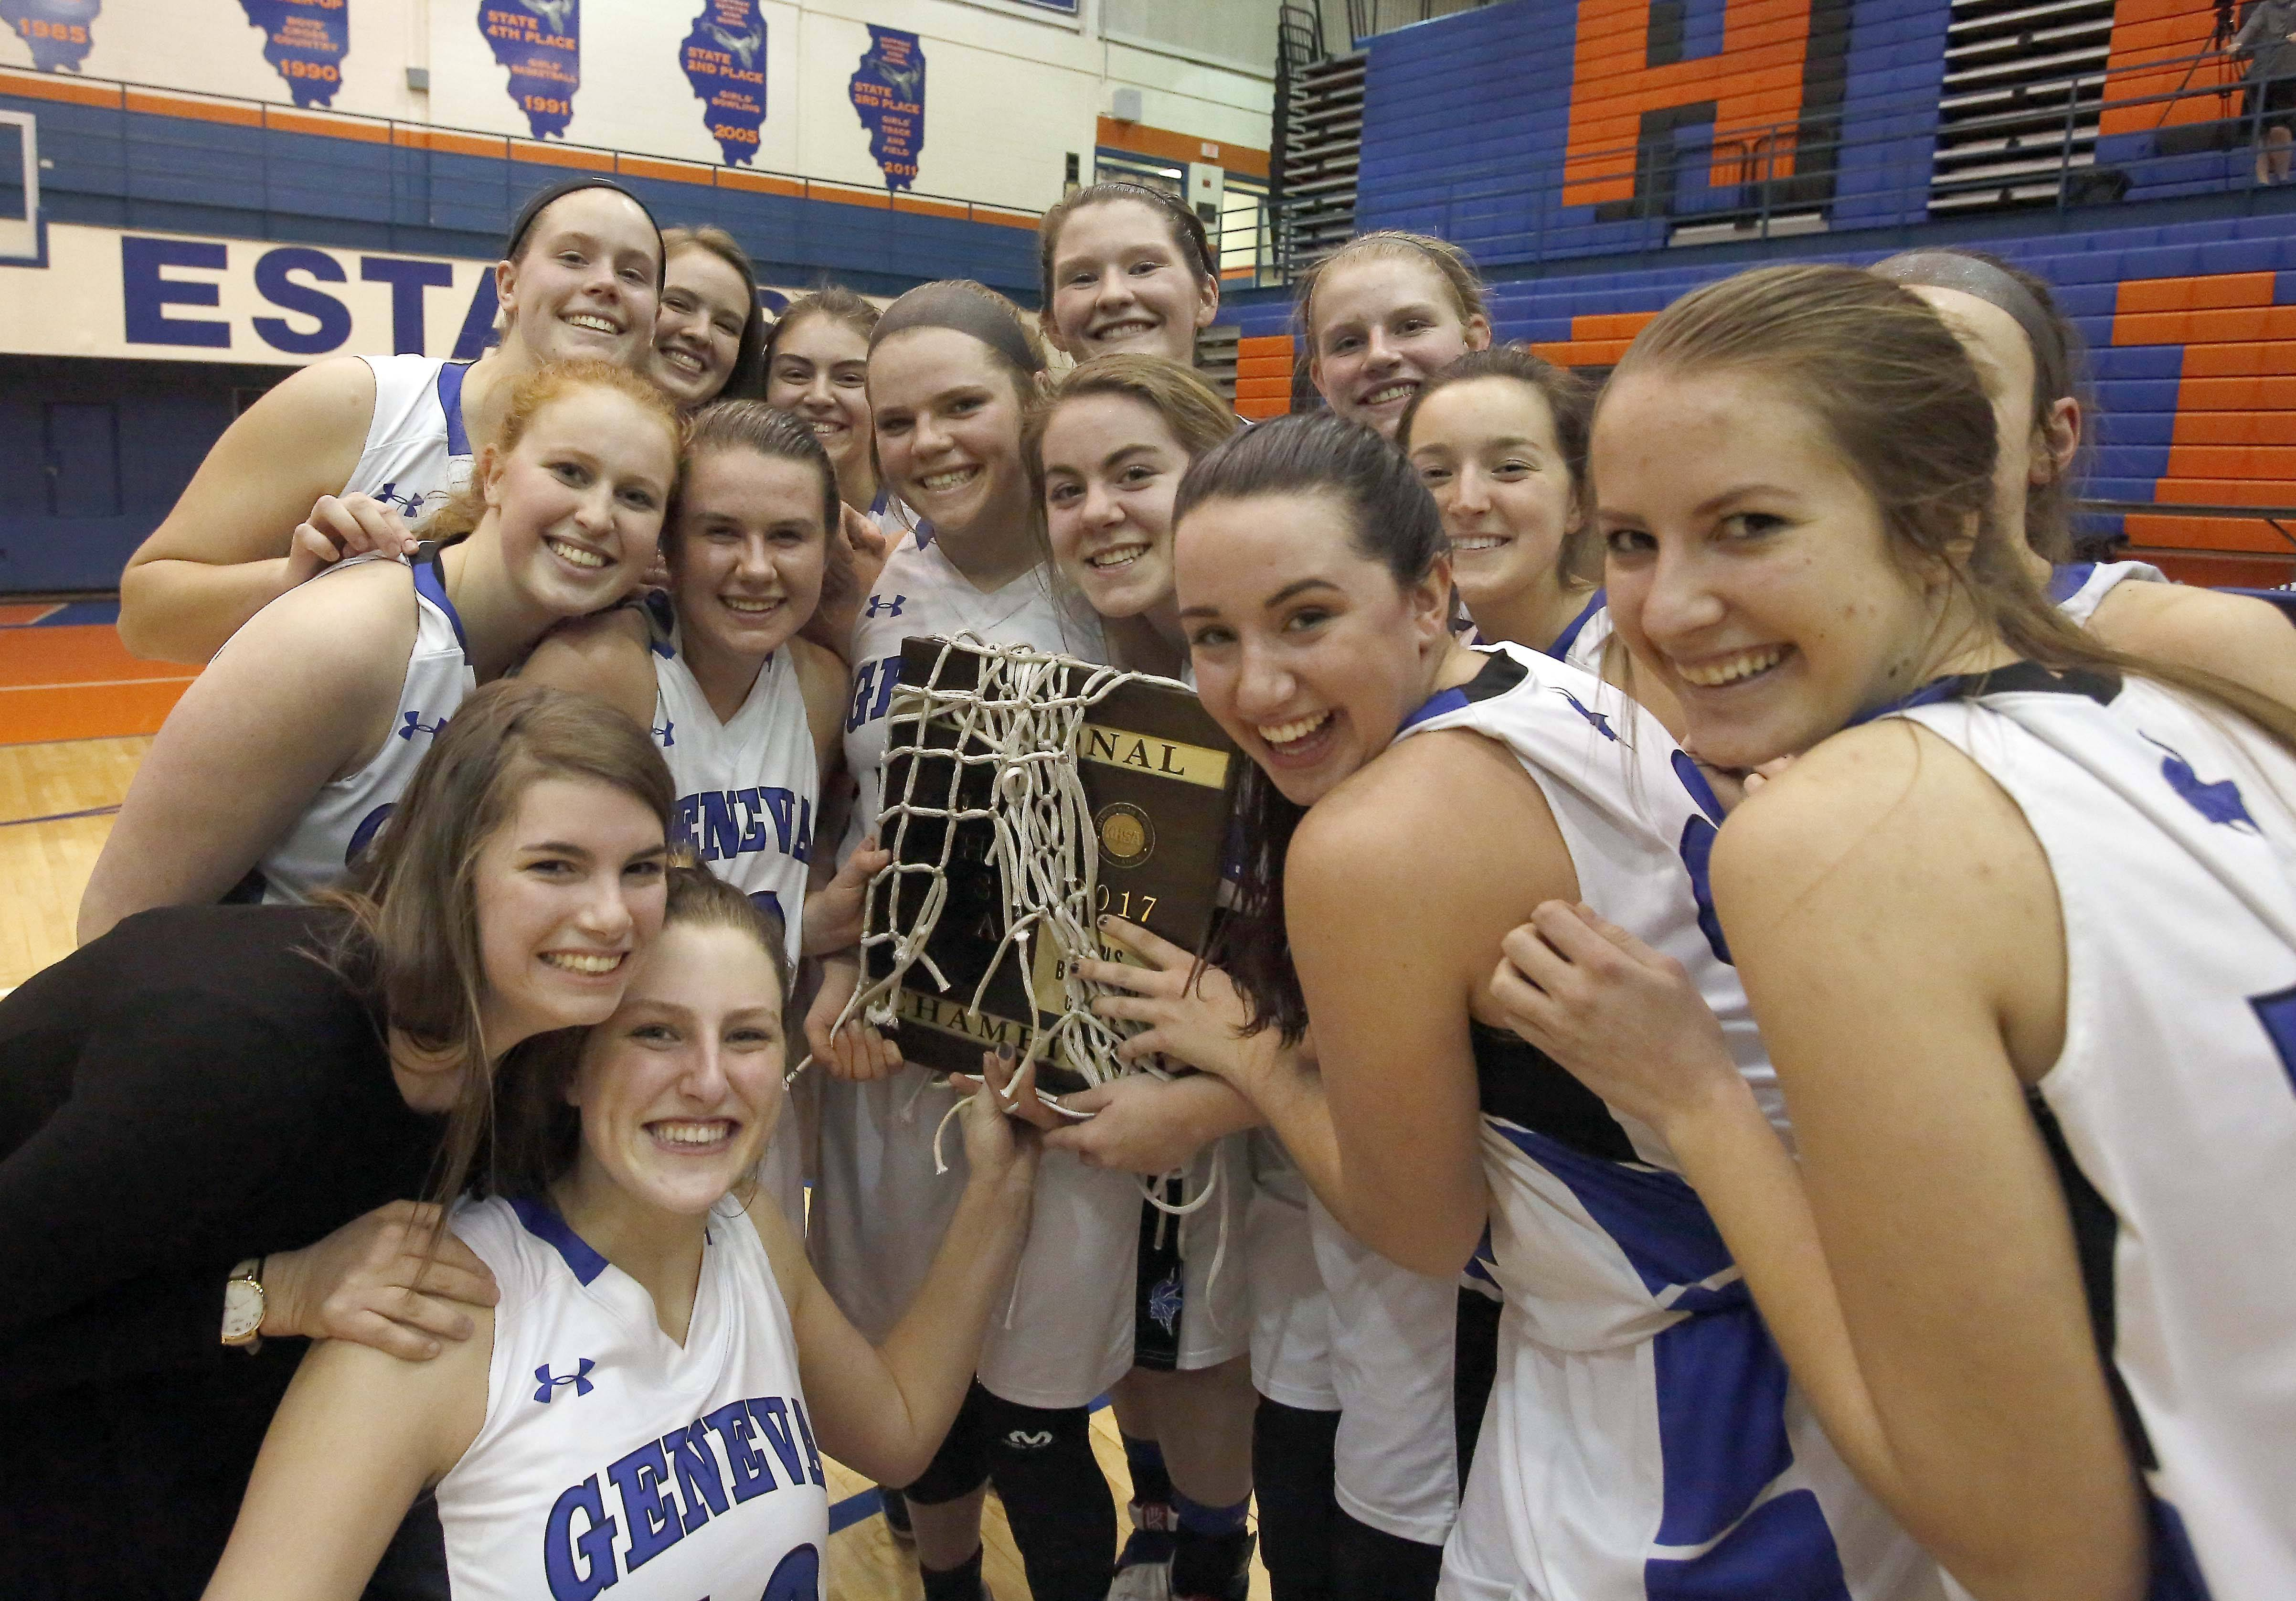 Ninth straight regional crown for Geneva